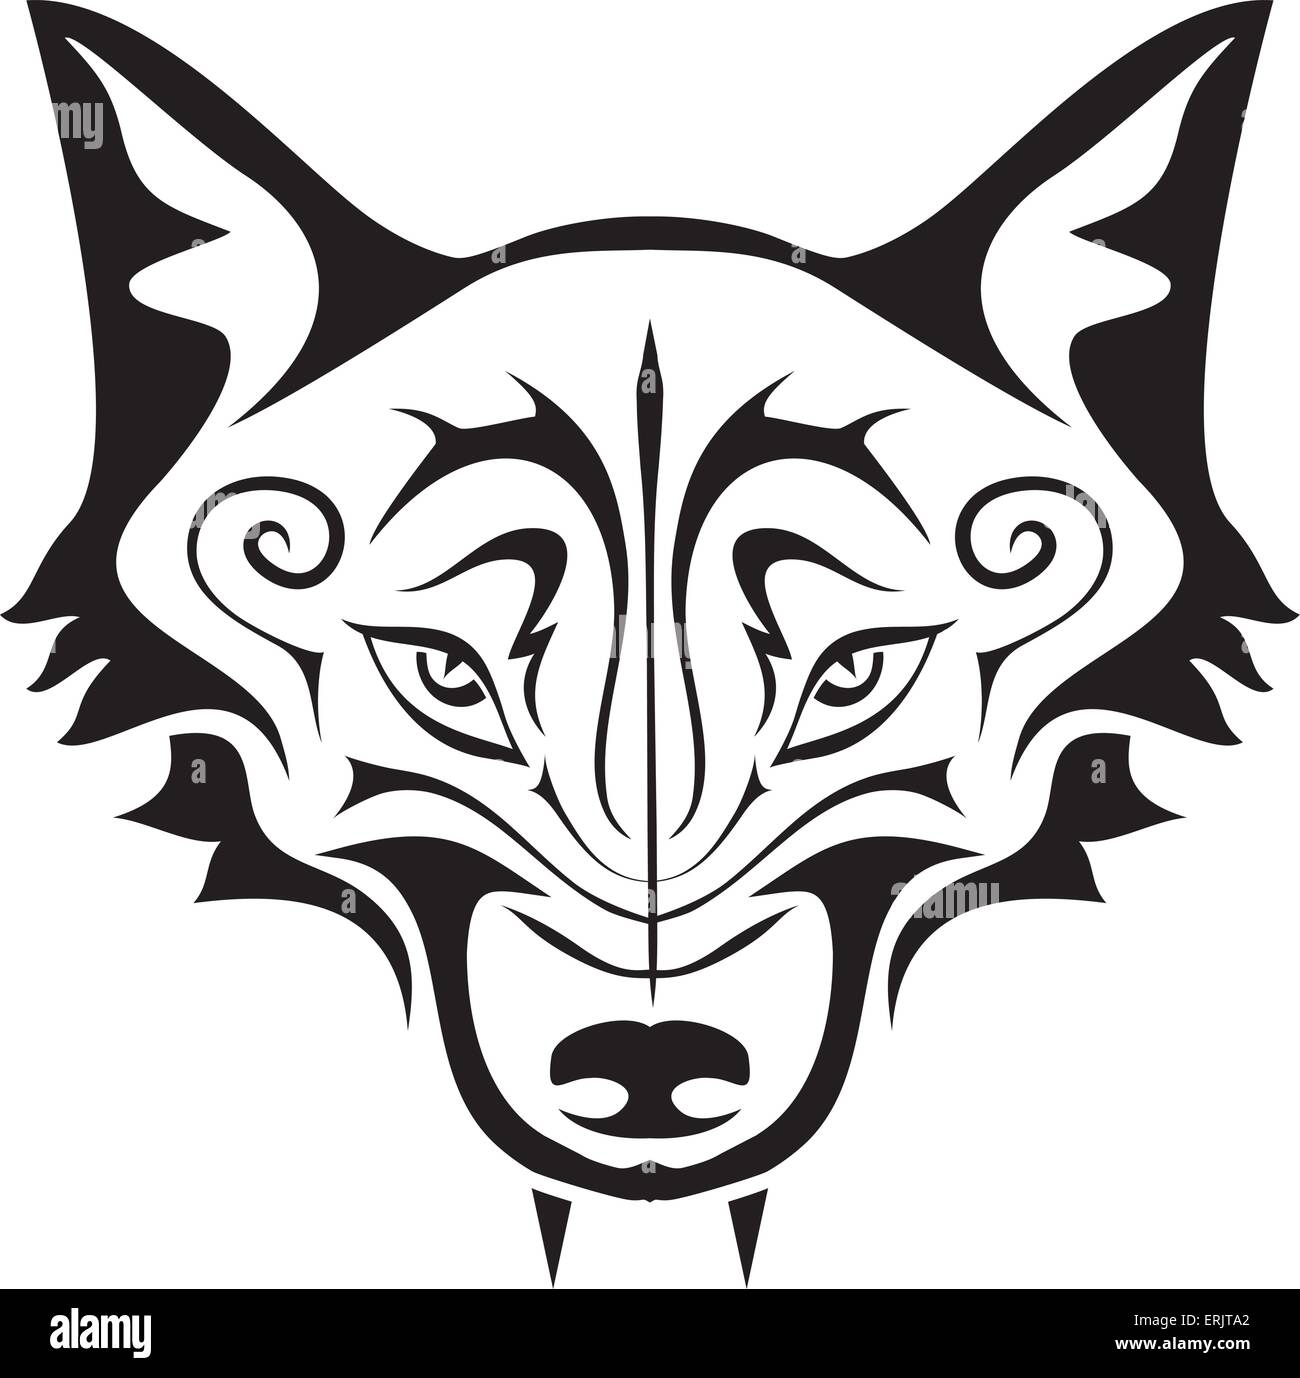 32e948a460d91 Black gothic tattoo. The head of a wolf on a white background - Stock Image